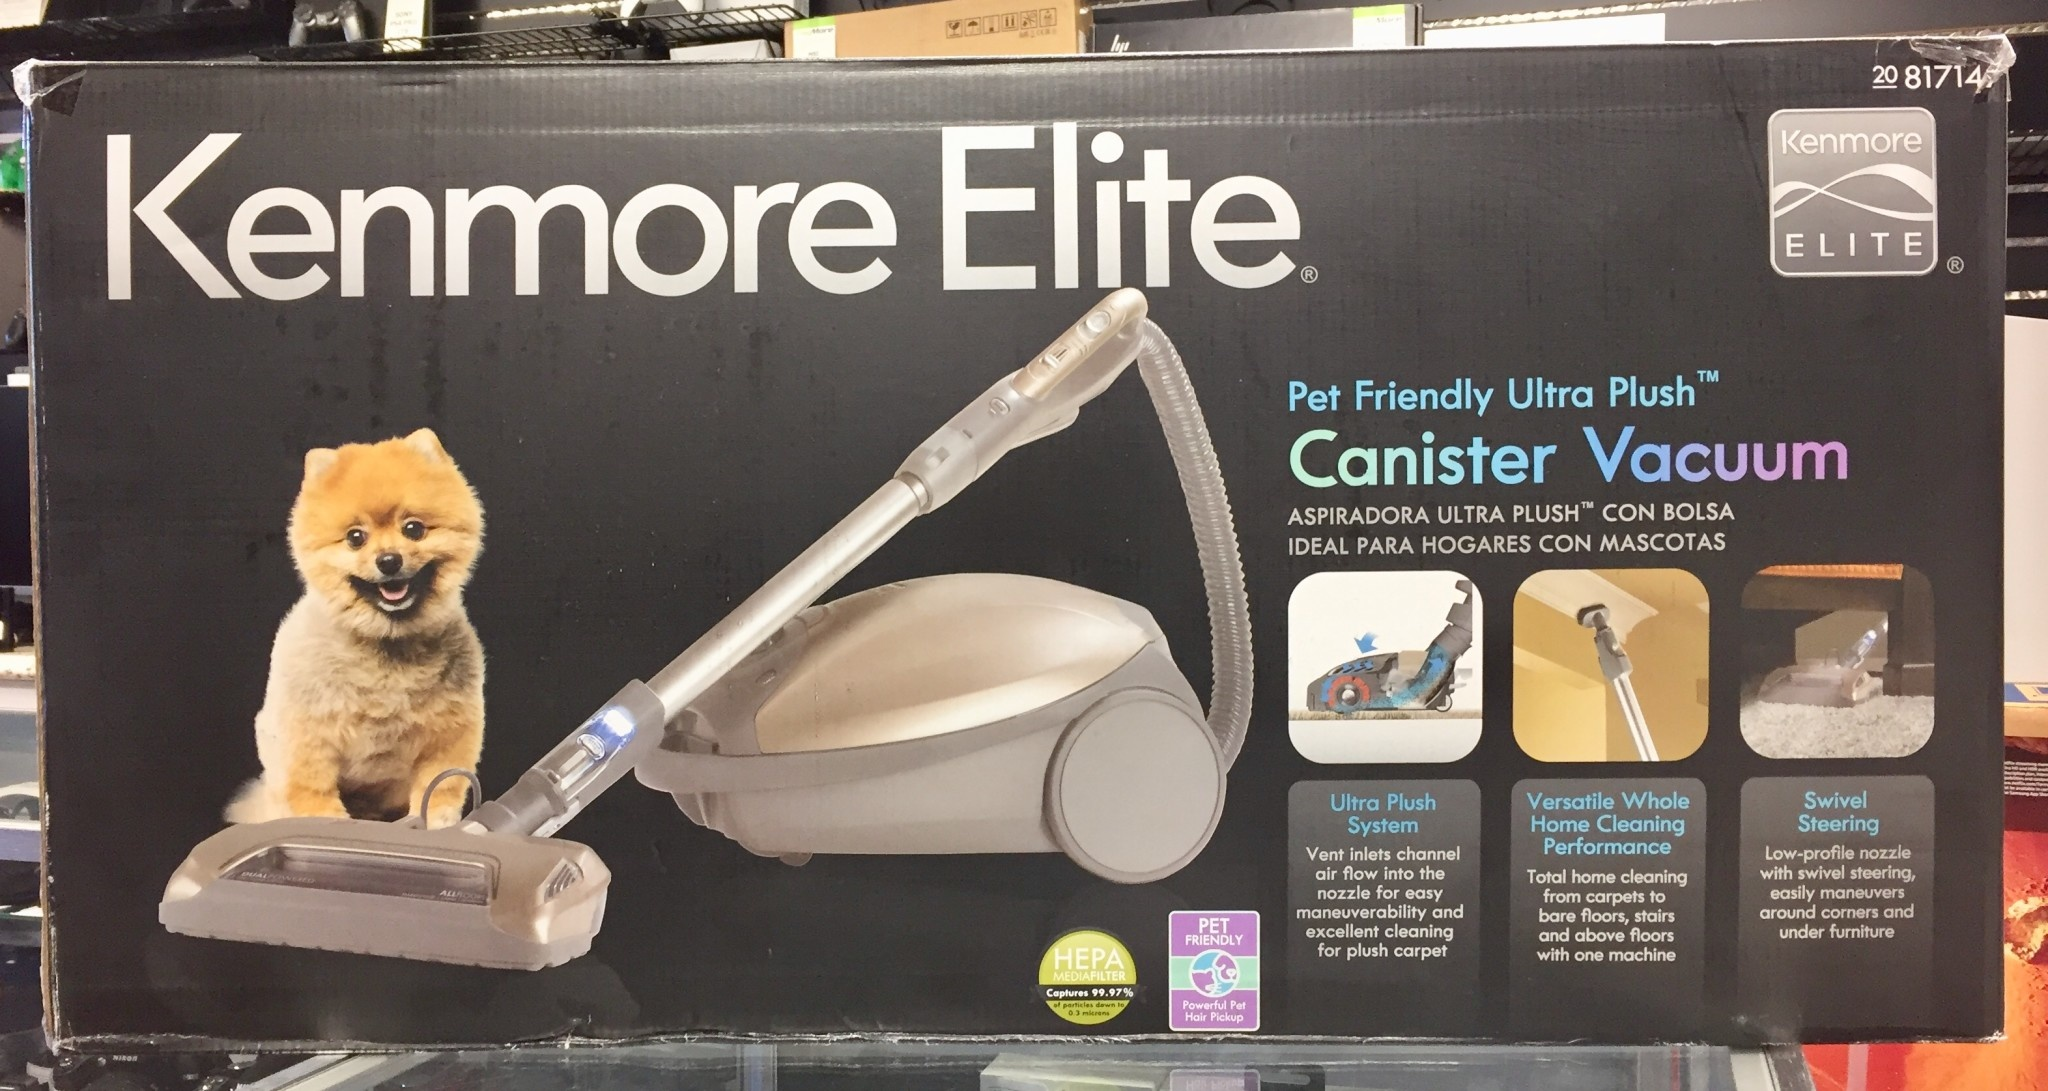 New - Kenmore Elite 81714 Allergy Friendly Ultra Plush Pet Canister Vacuum